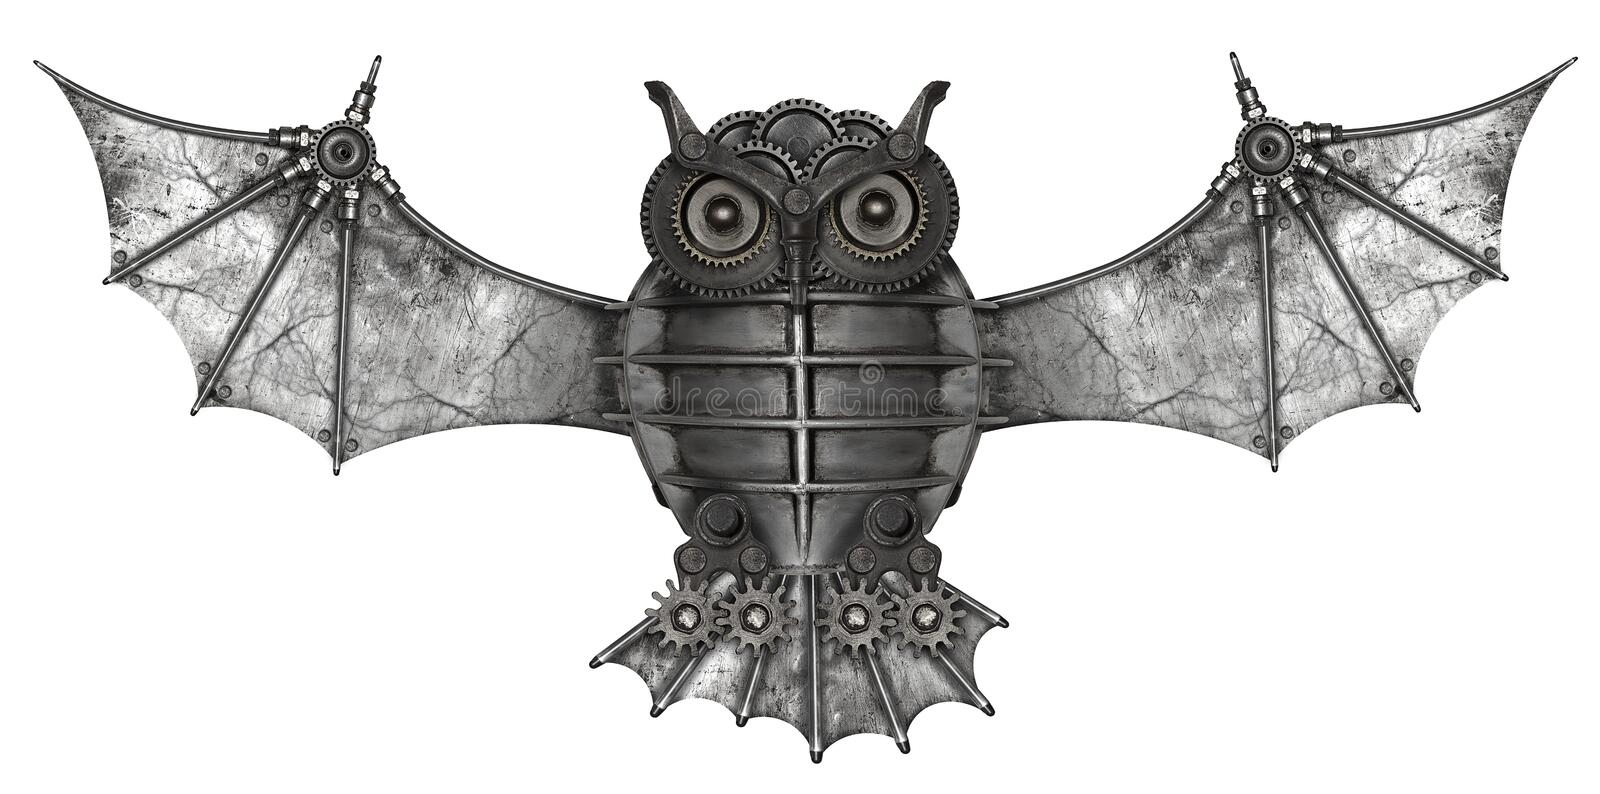 Steampunk style owl. Mechanical animal photo compilation stock photography